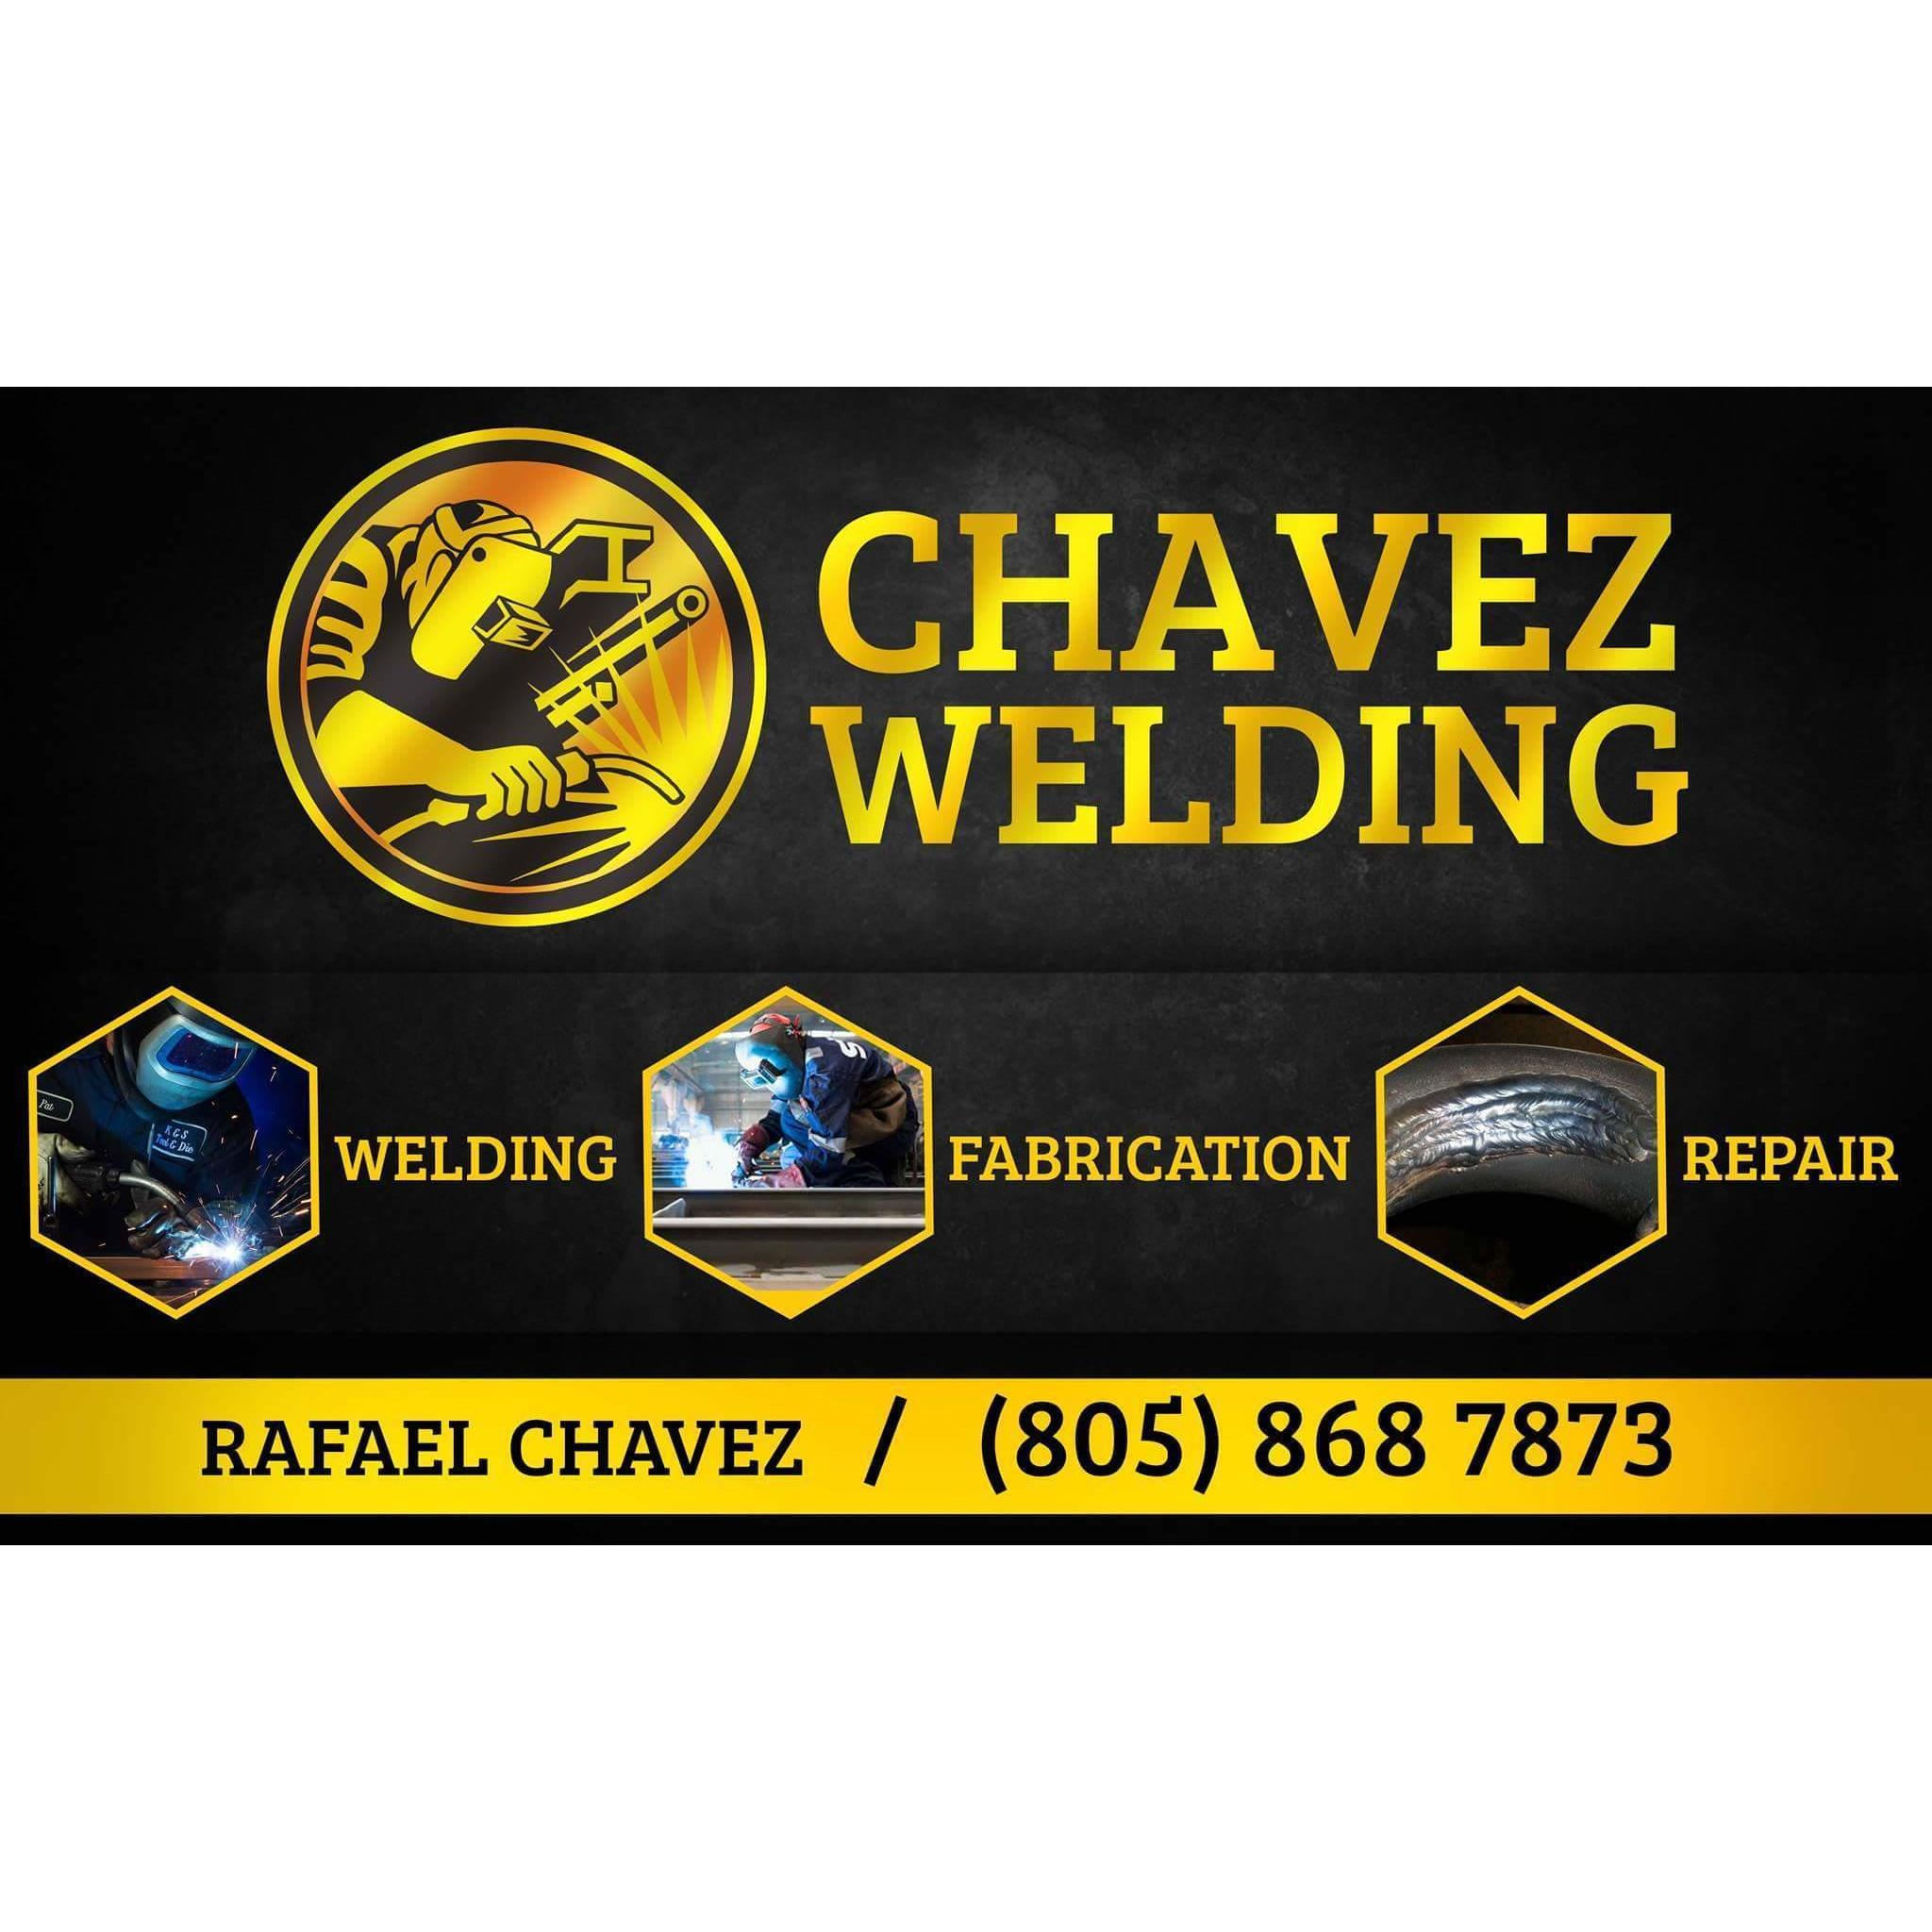 Chavez Welding  and  Sons Fabrications image 0